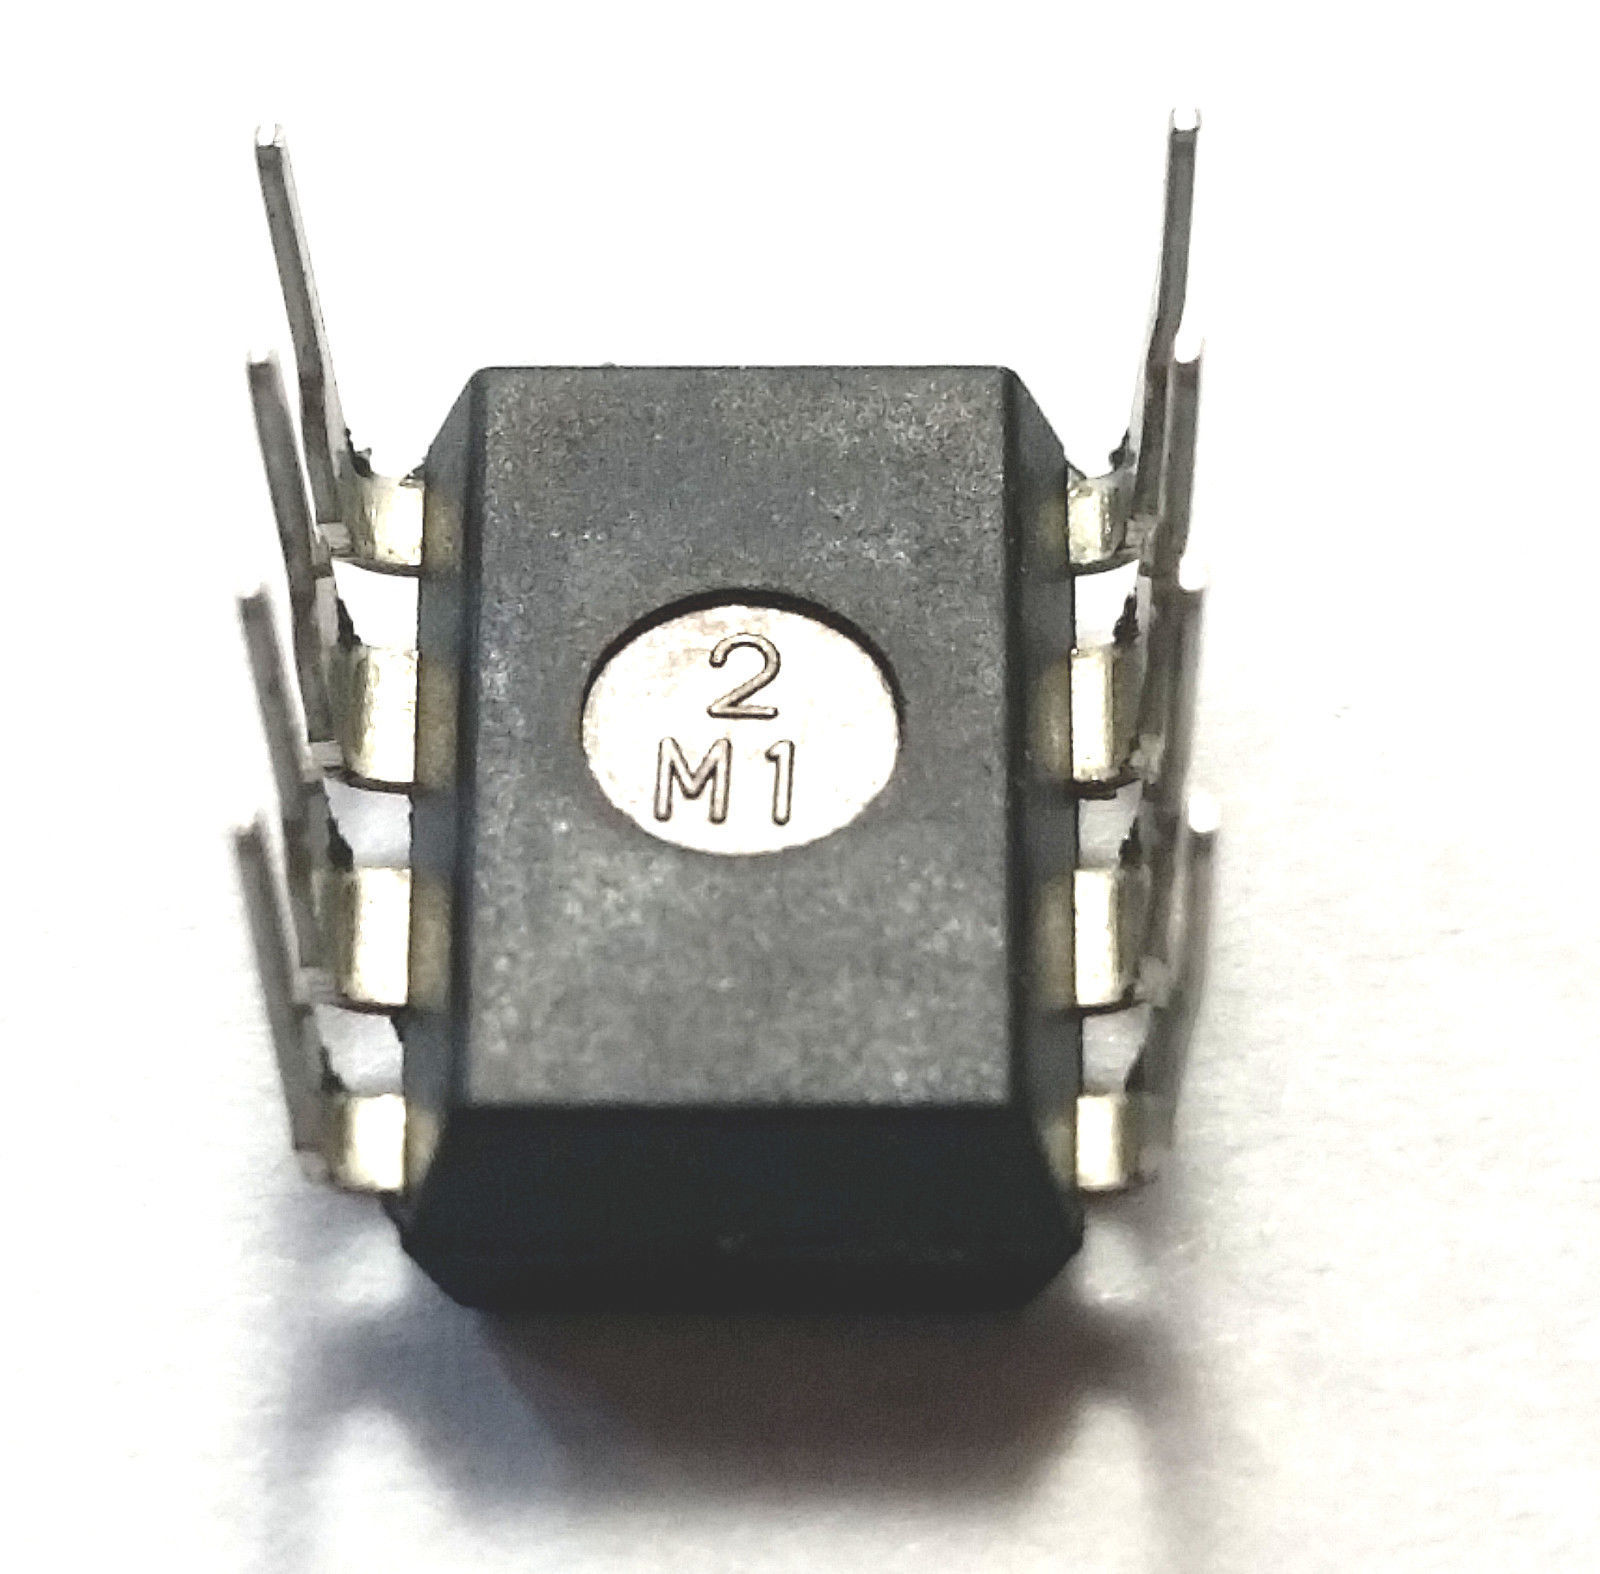 5 x Texas Instruments LM386N-1 LM386 Free Shipping New and Authentic USA Seller